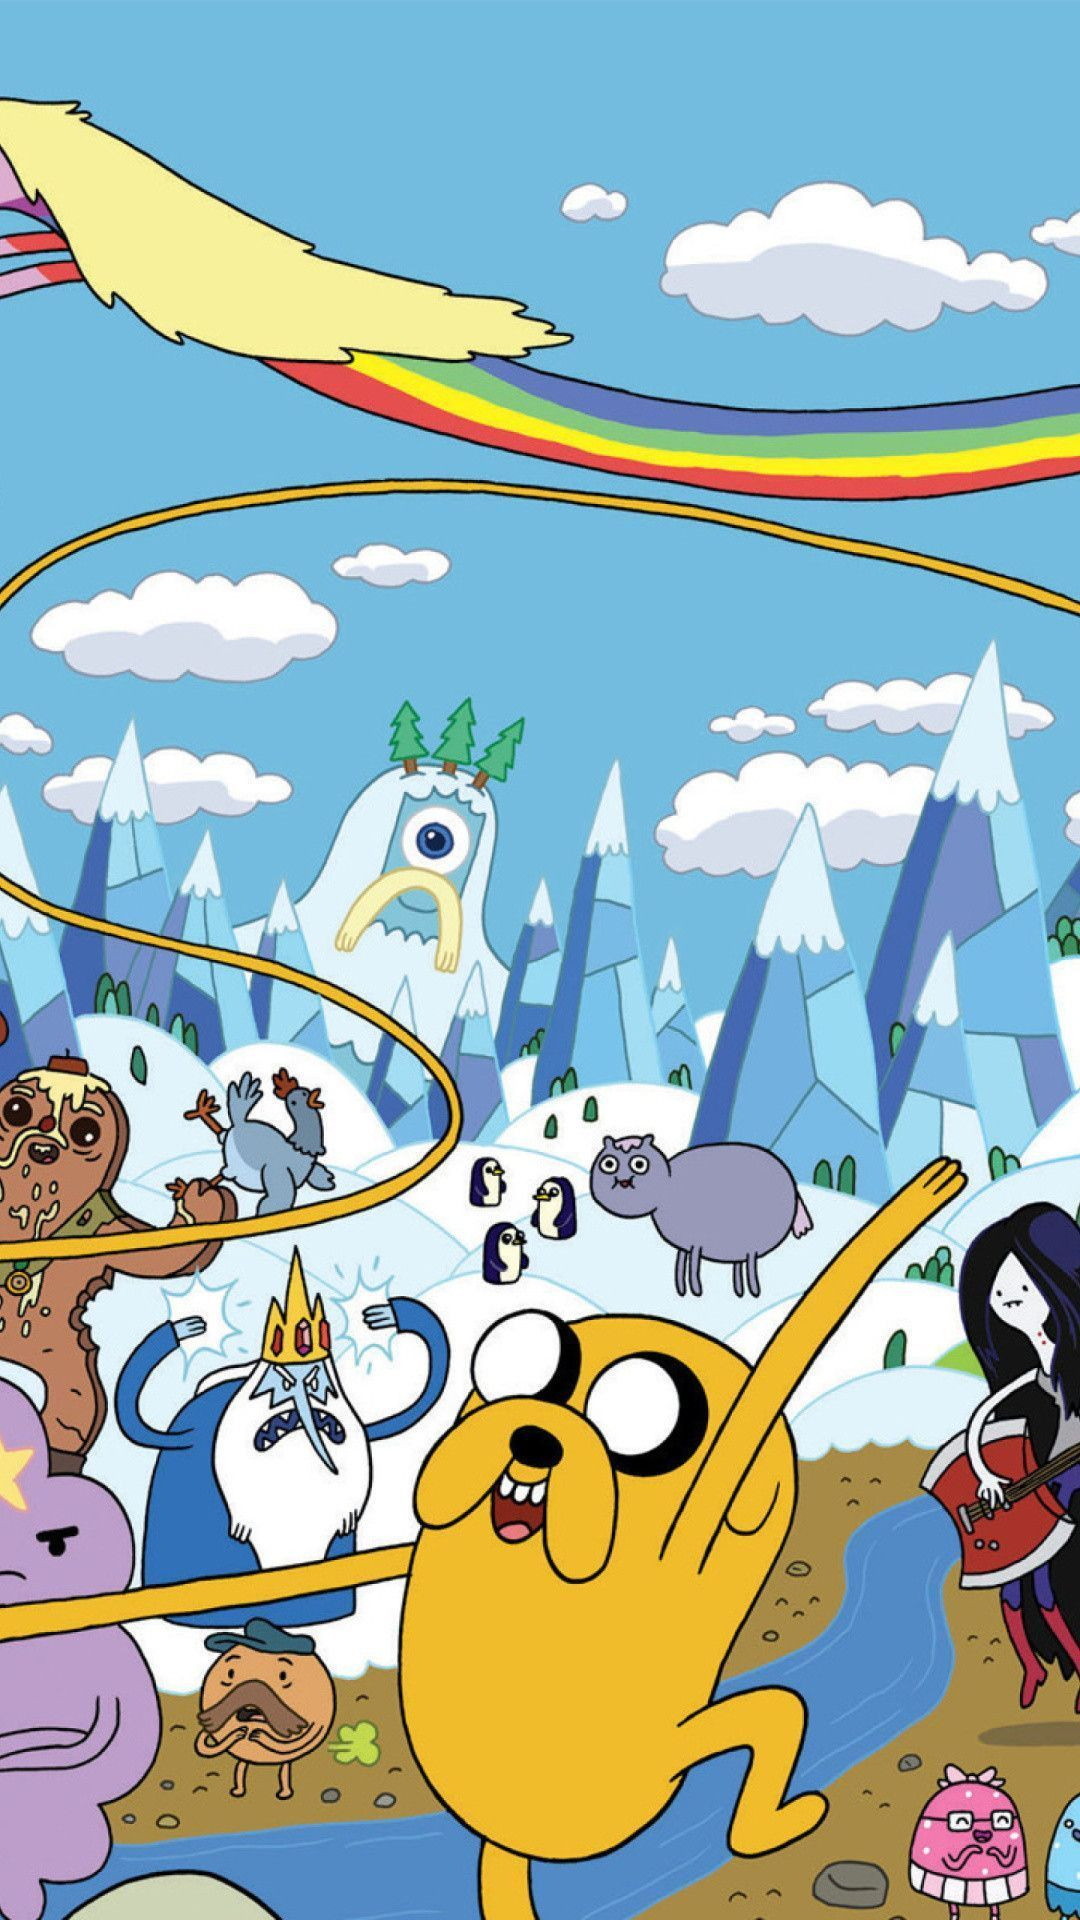 Aesthetic Adventure Time Wallpapers - Wallpaper Cave